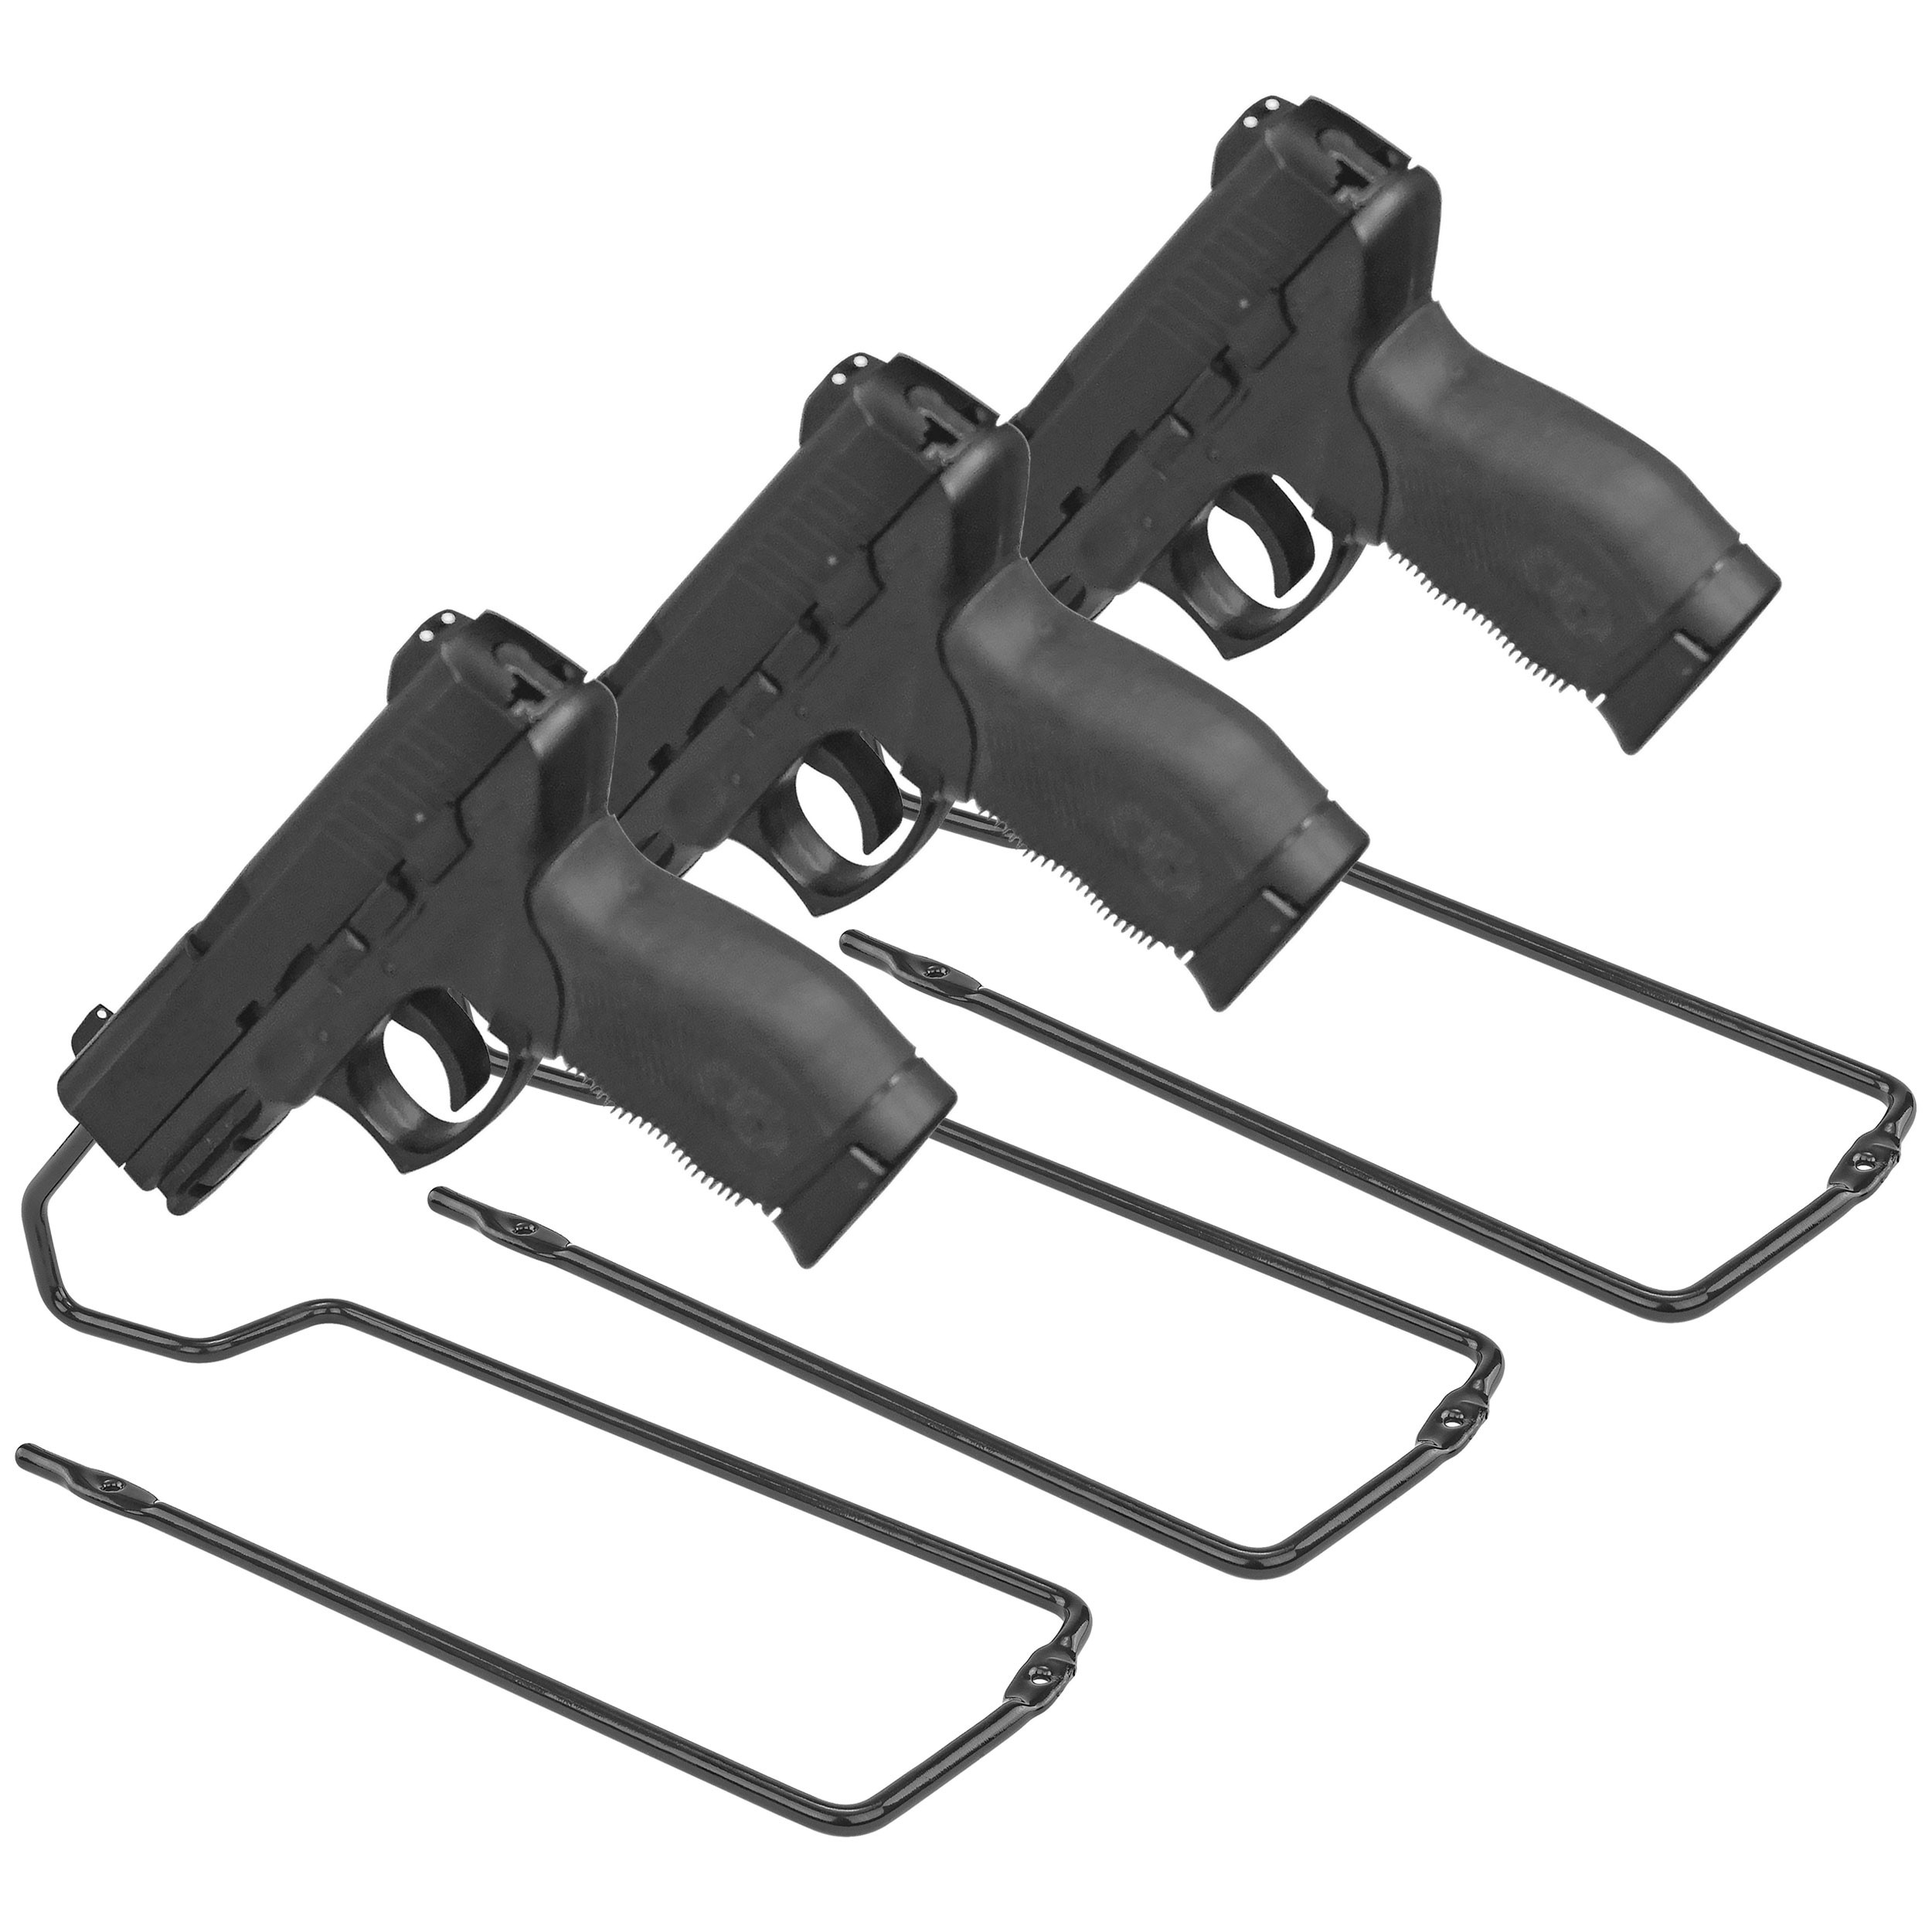 BOOMSTICK Gun Accessories Stand Style Vinyl Coated Metal Handgun Pistol Rack